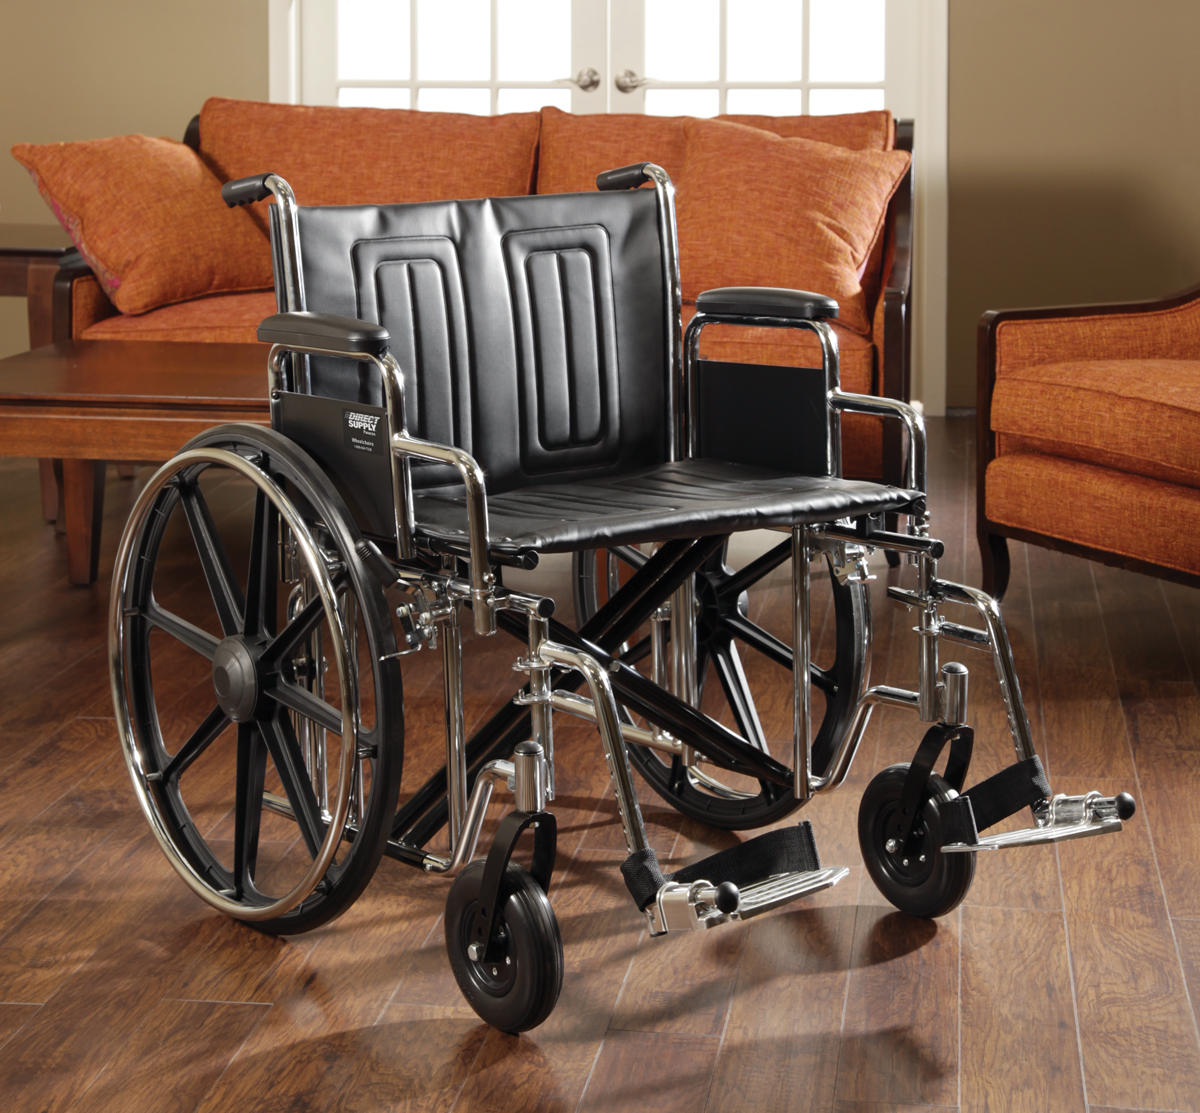 Webinar: Wheelchair Seating and Positioning for Best Posture